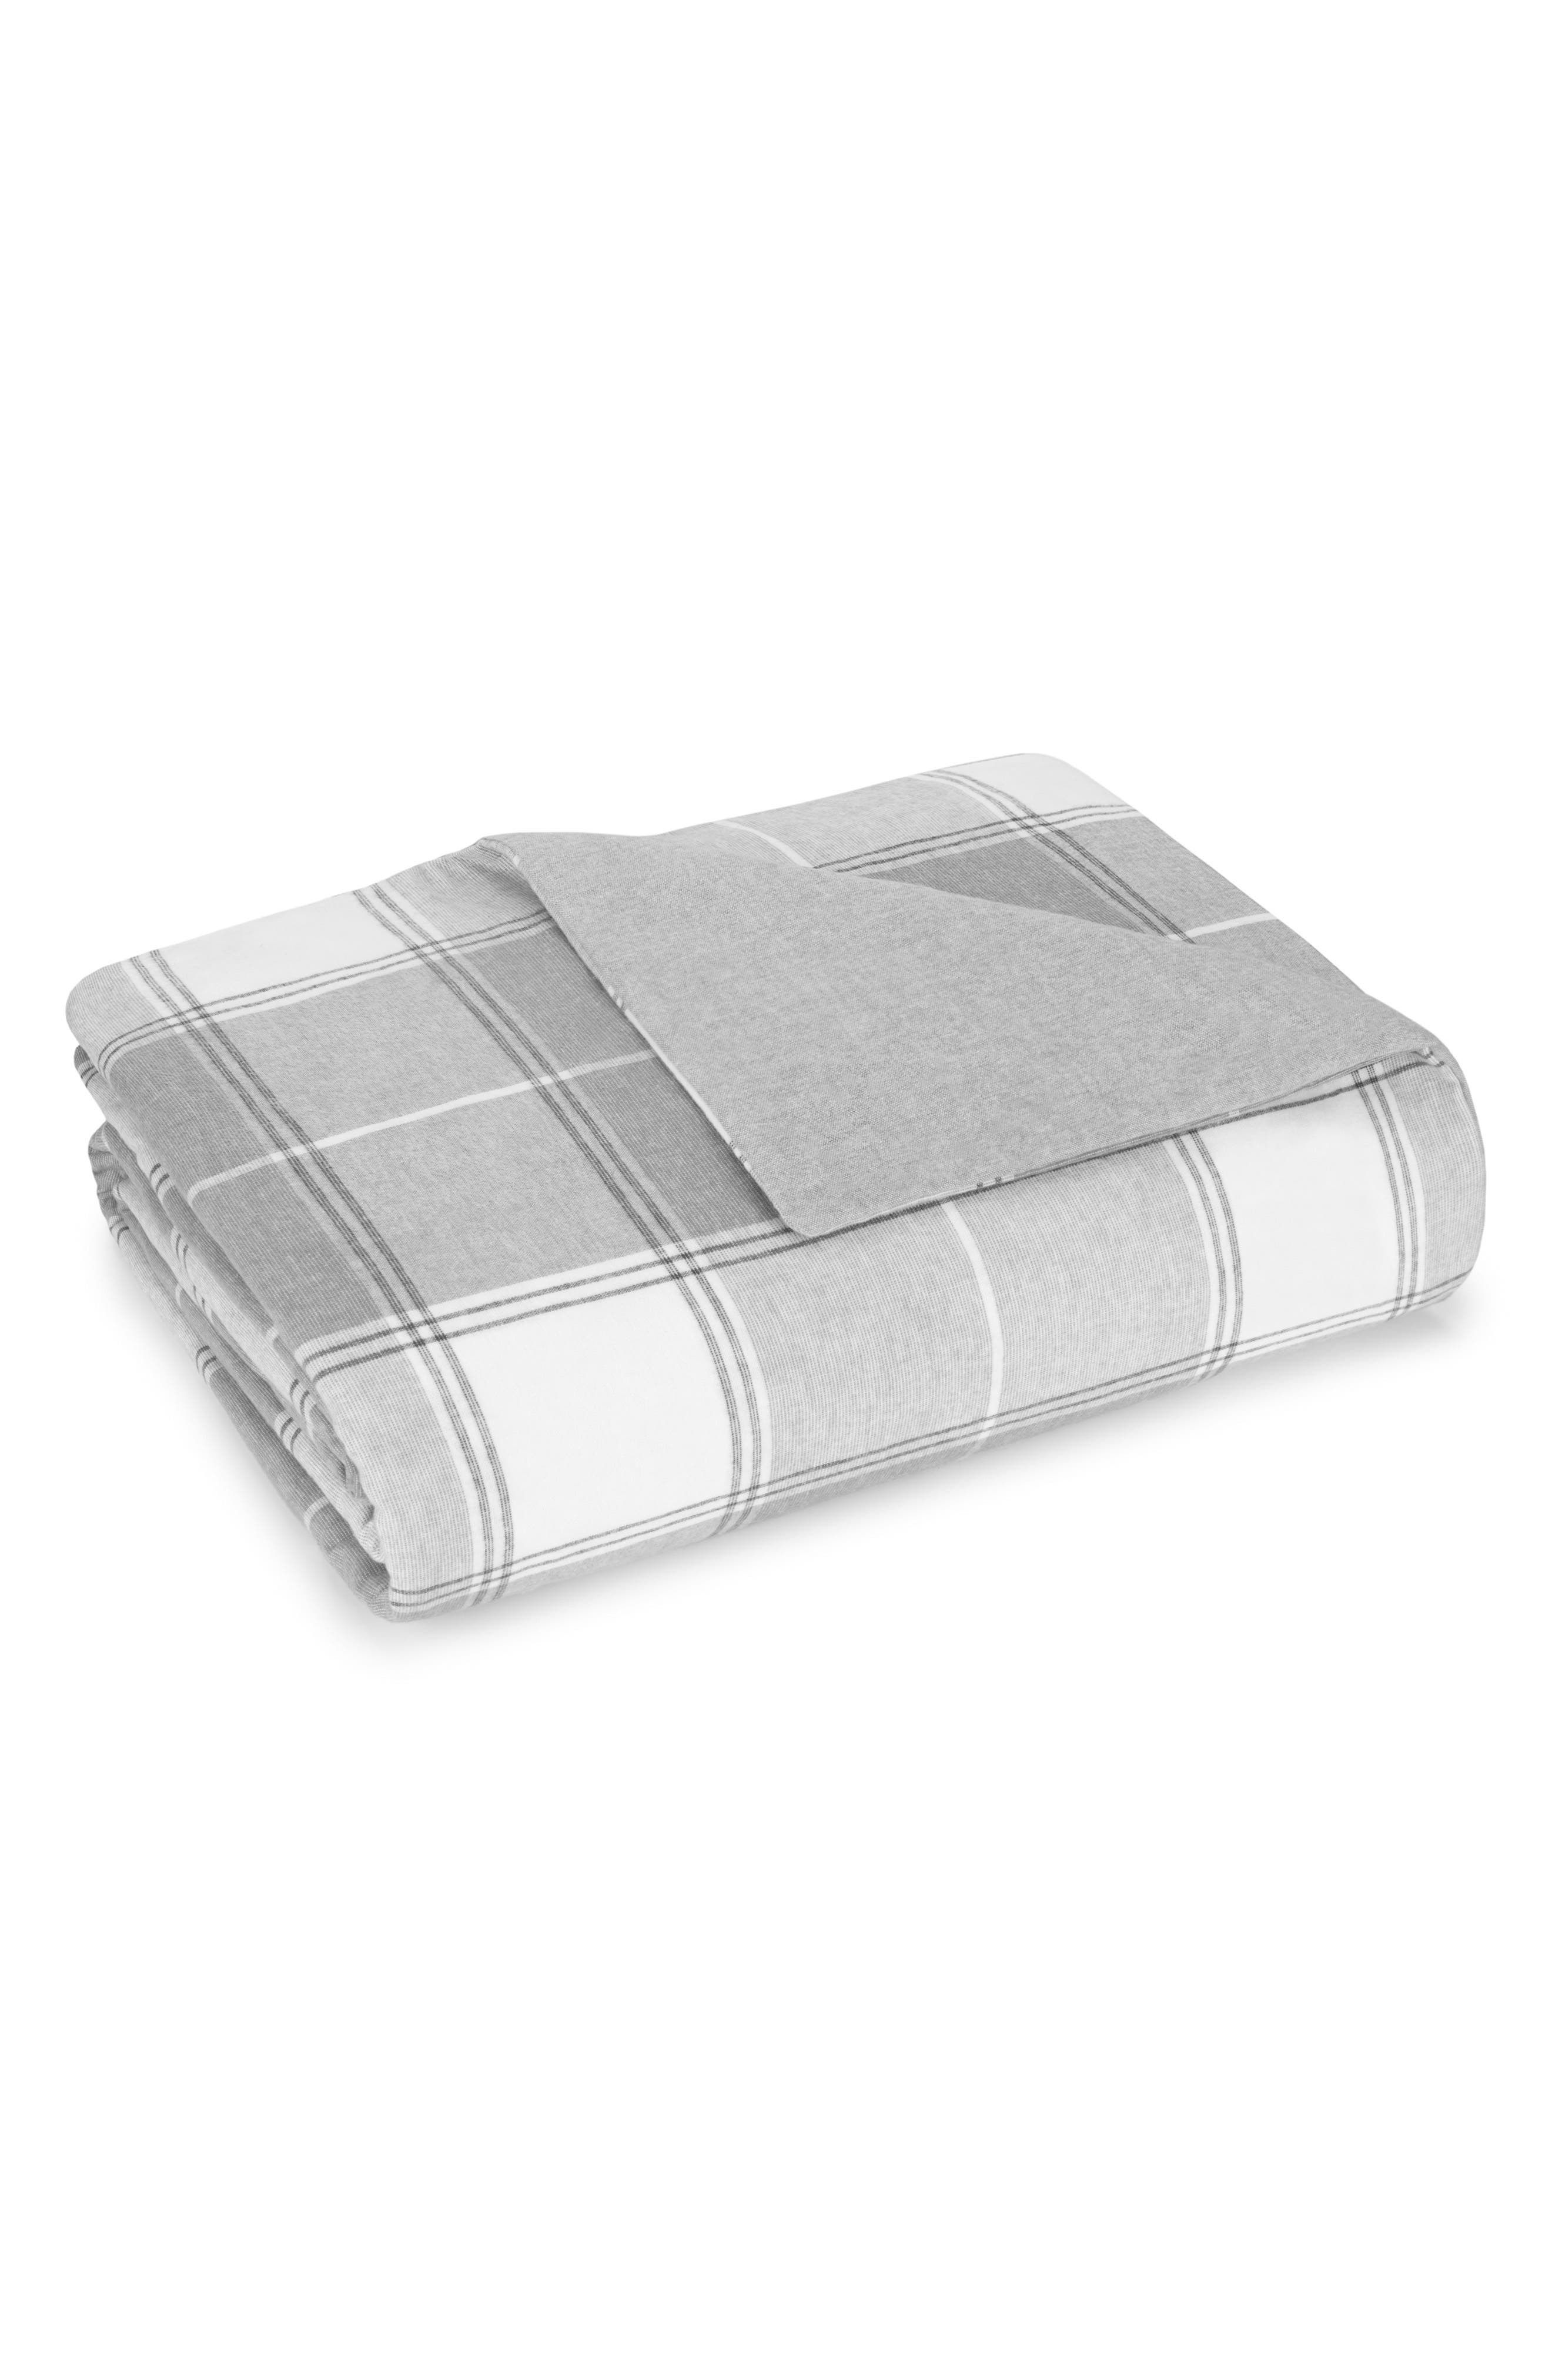 Flannel Luxe Duvet Cover,                         Main,                         color, 021